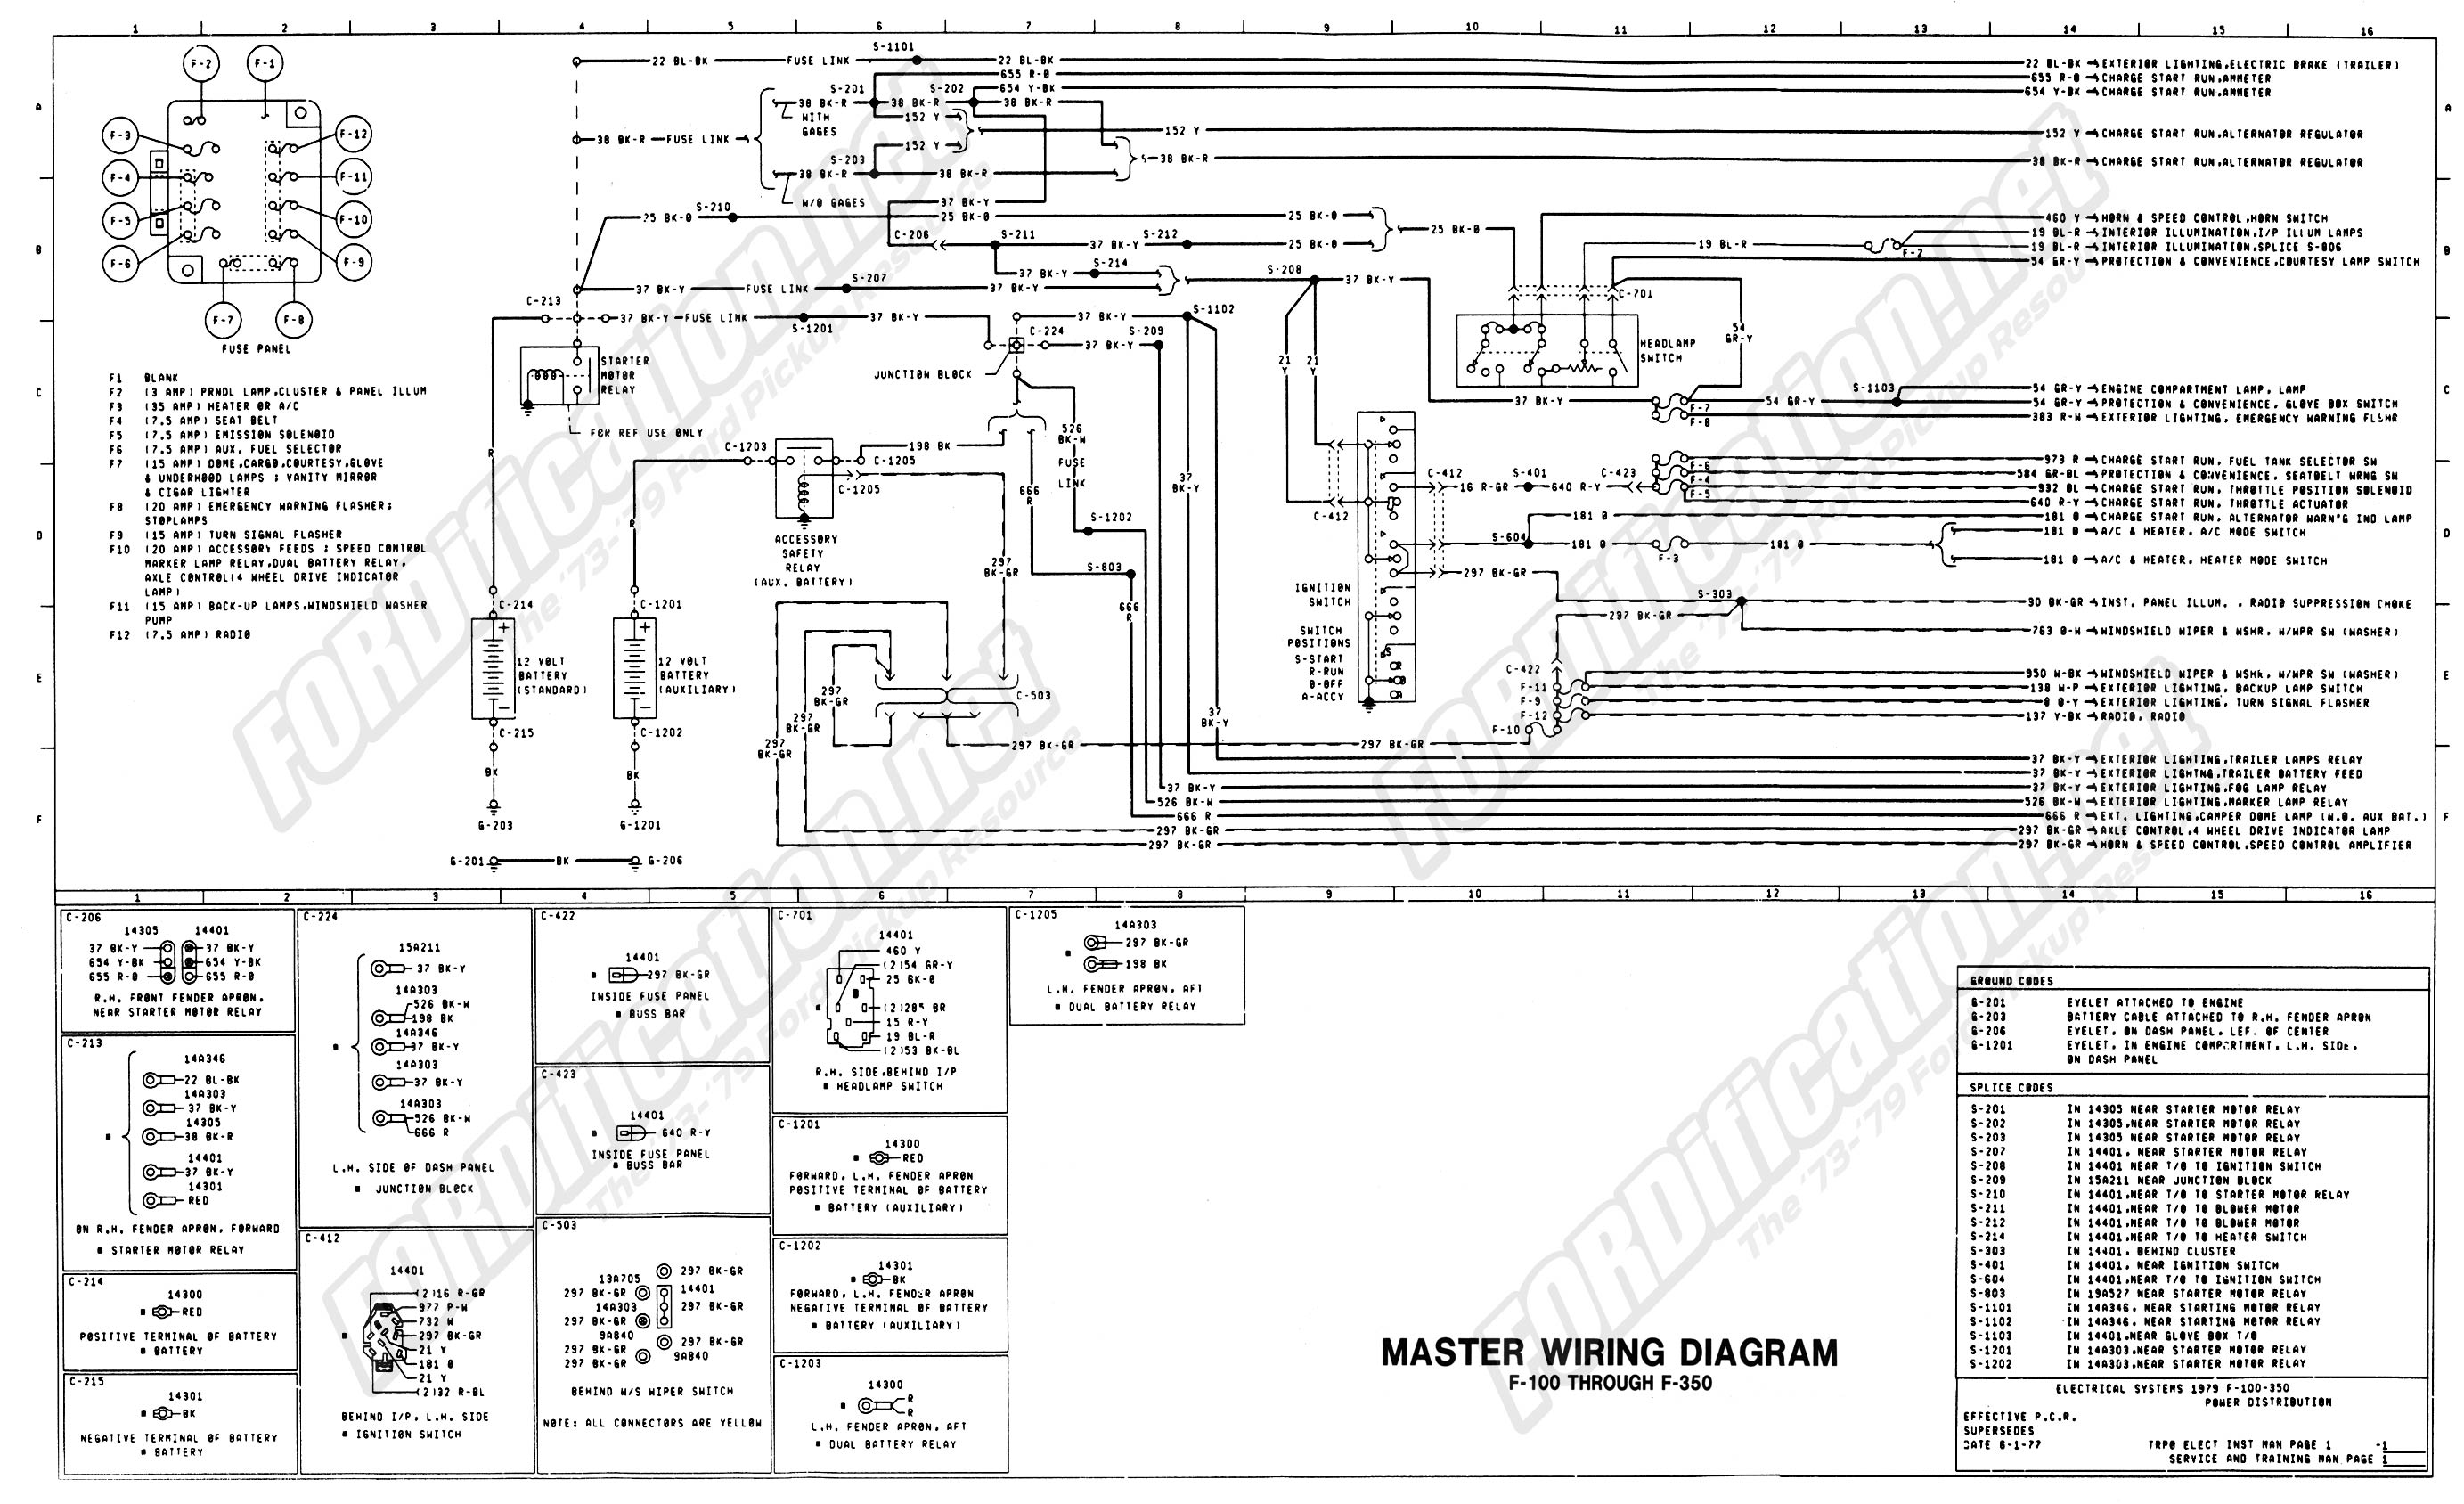 wiring_79master_1of9 1973 1979 ford truck wiring diagrams & schematics fordification net 1979 bronco fuse box diagram at crackthecode.co